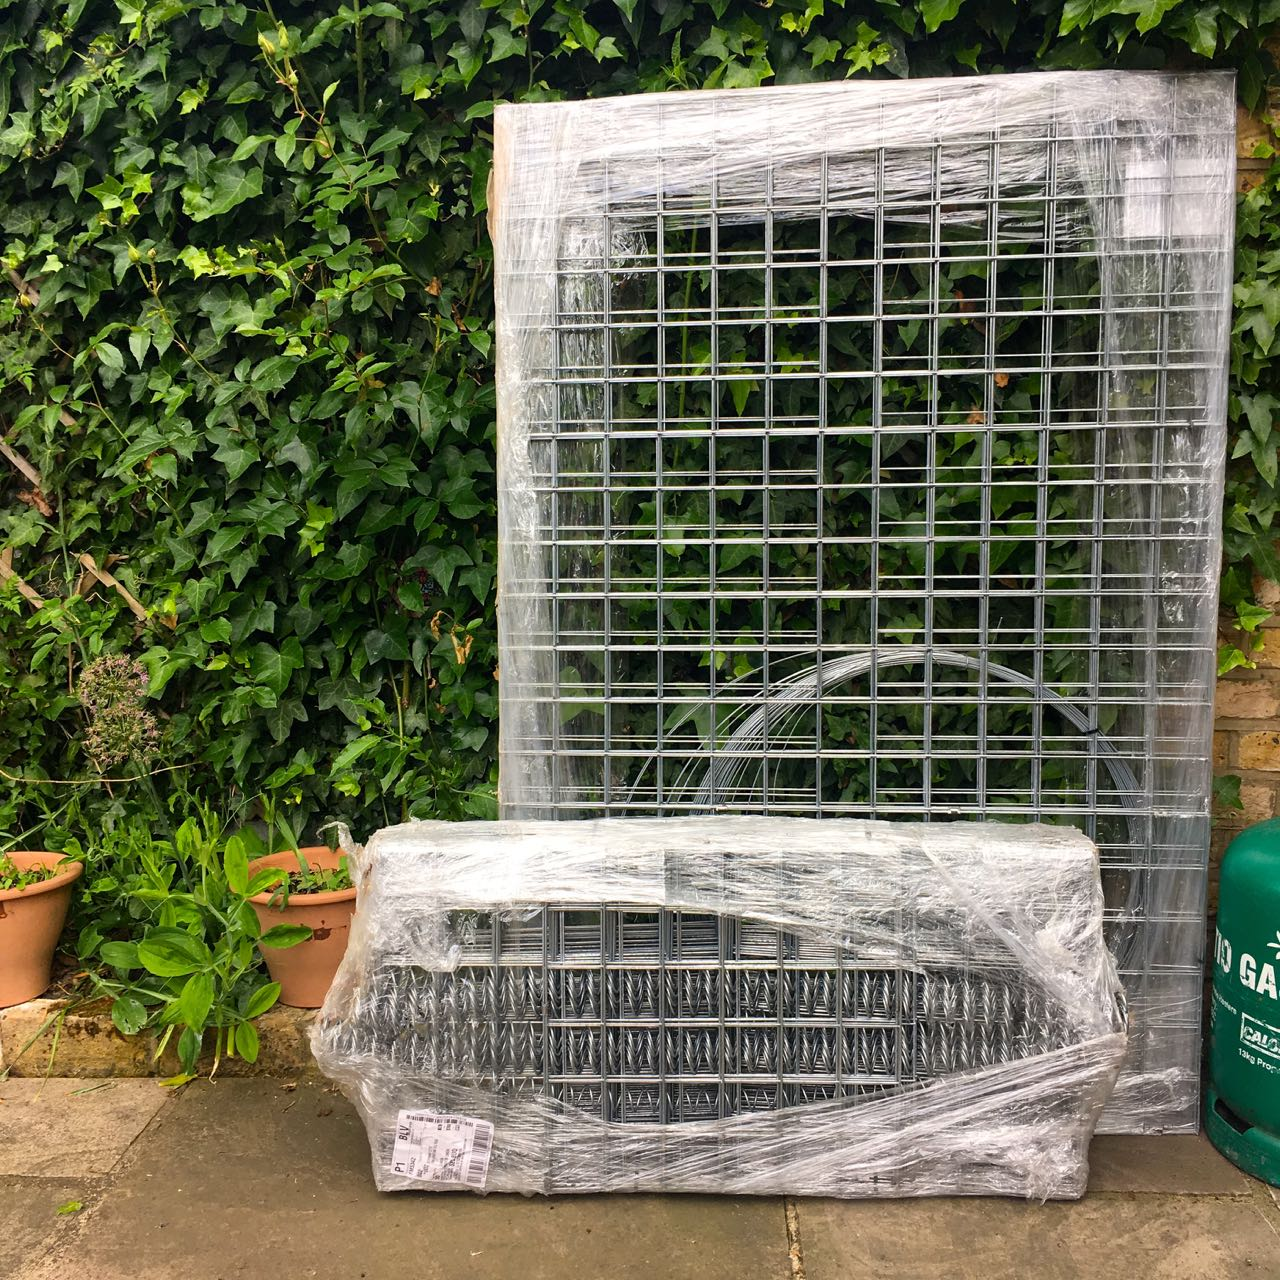 The gabion baskets had arrived, just the assembly needed then